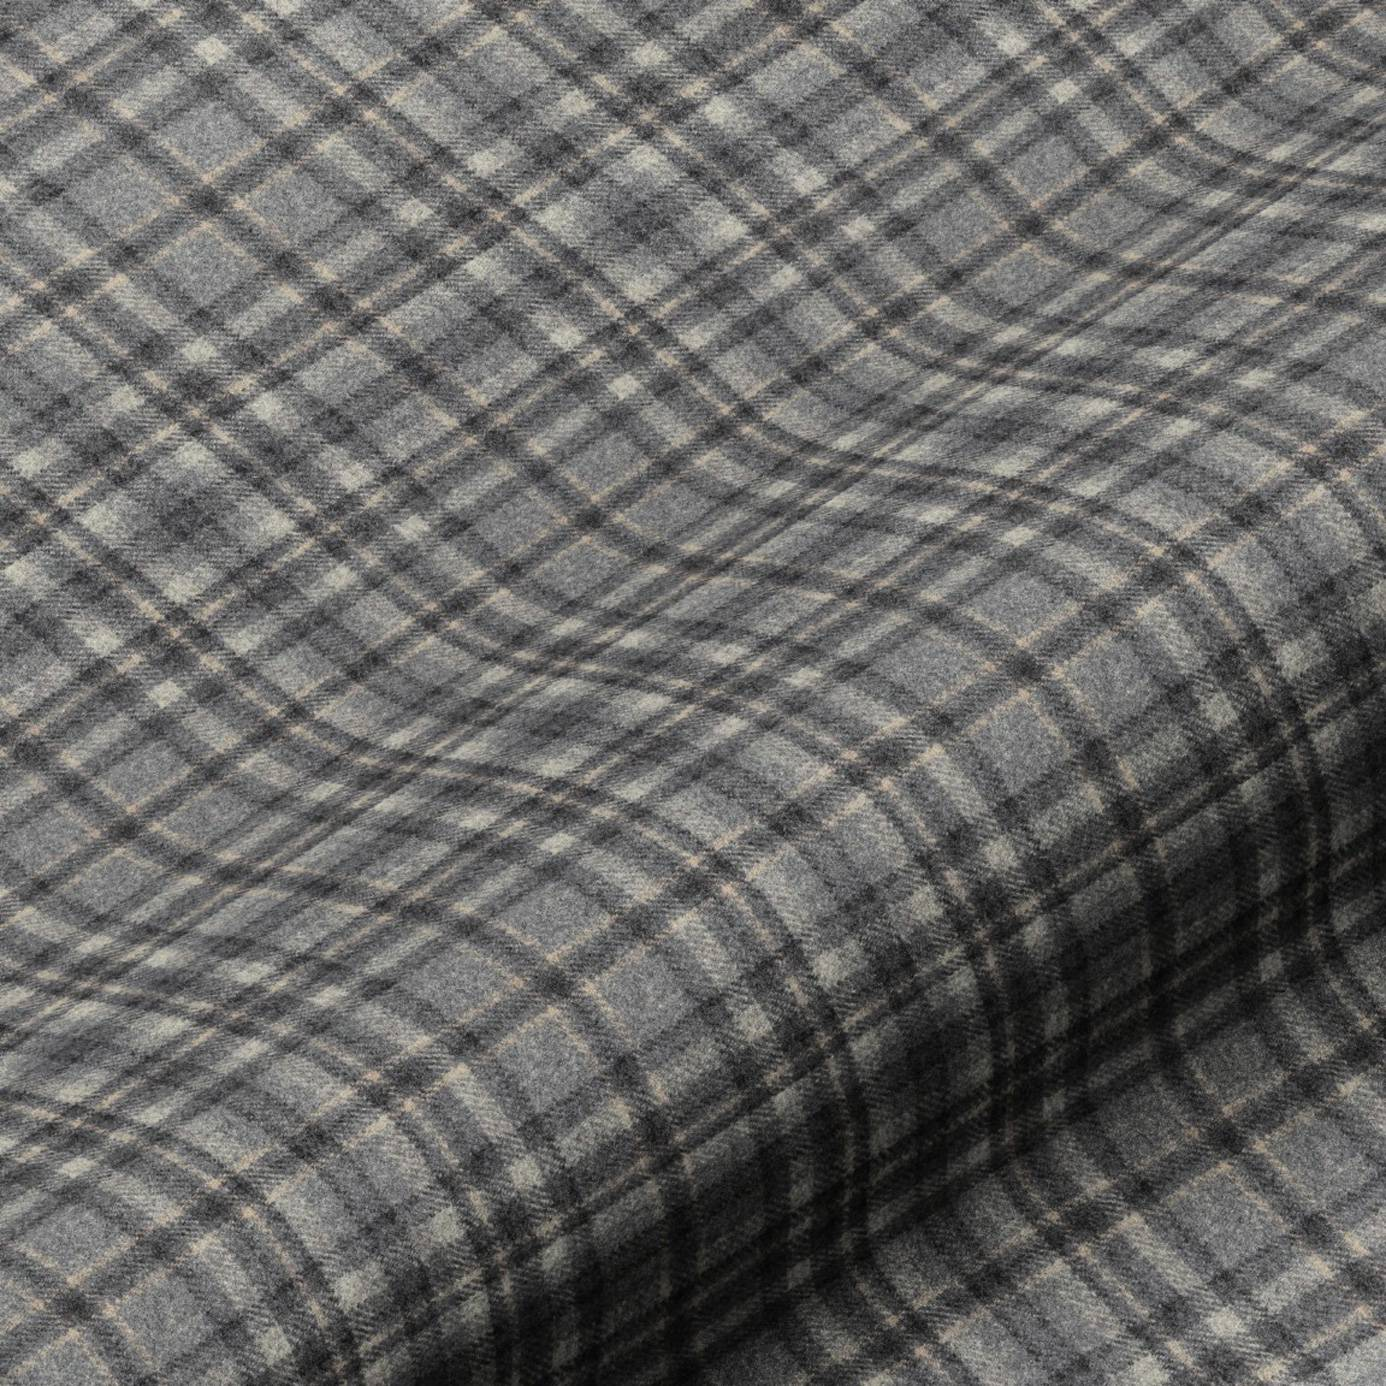 Harrogate Plaid Fabric Grey Black Harrogateplaidgrey